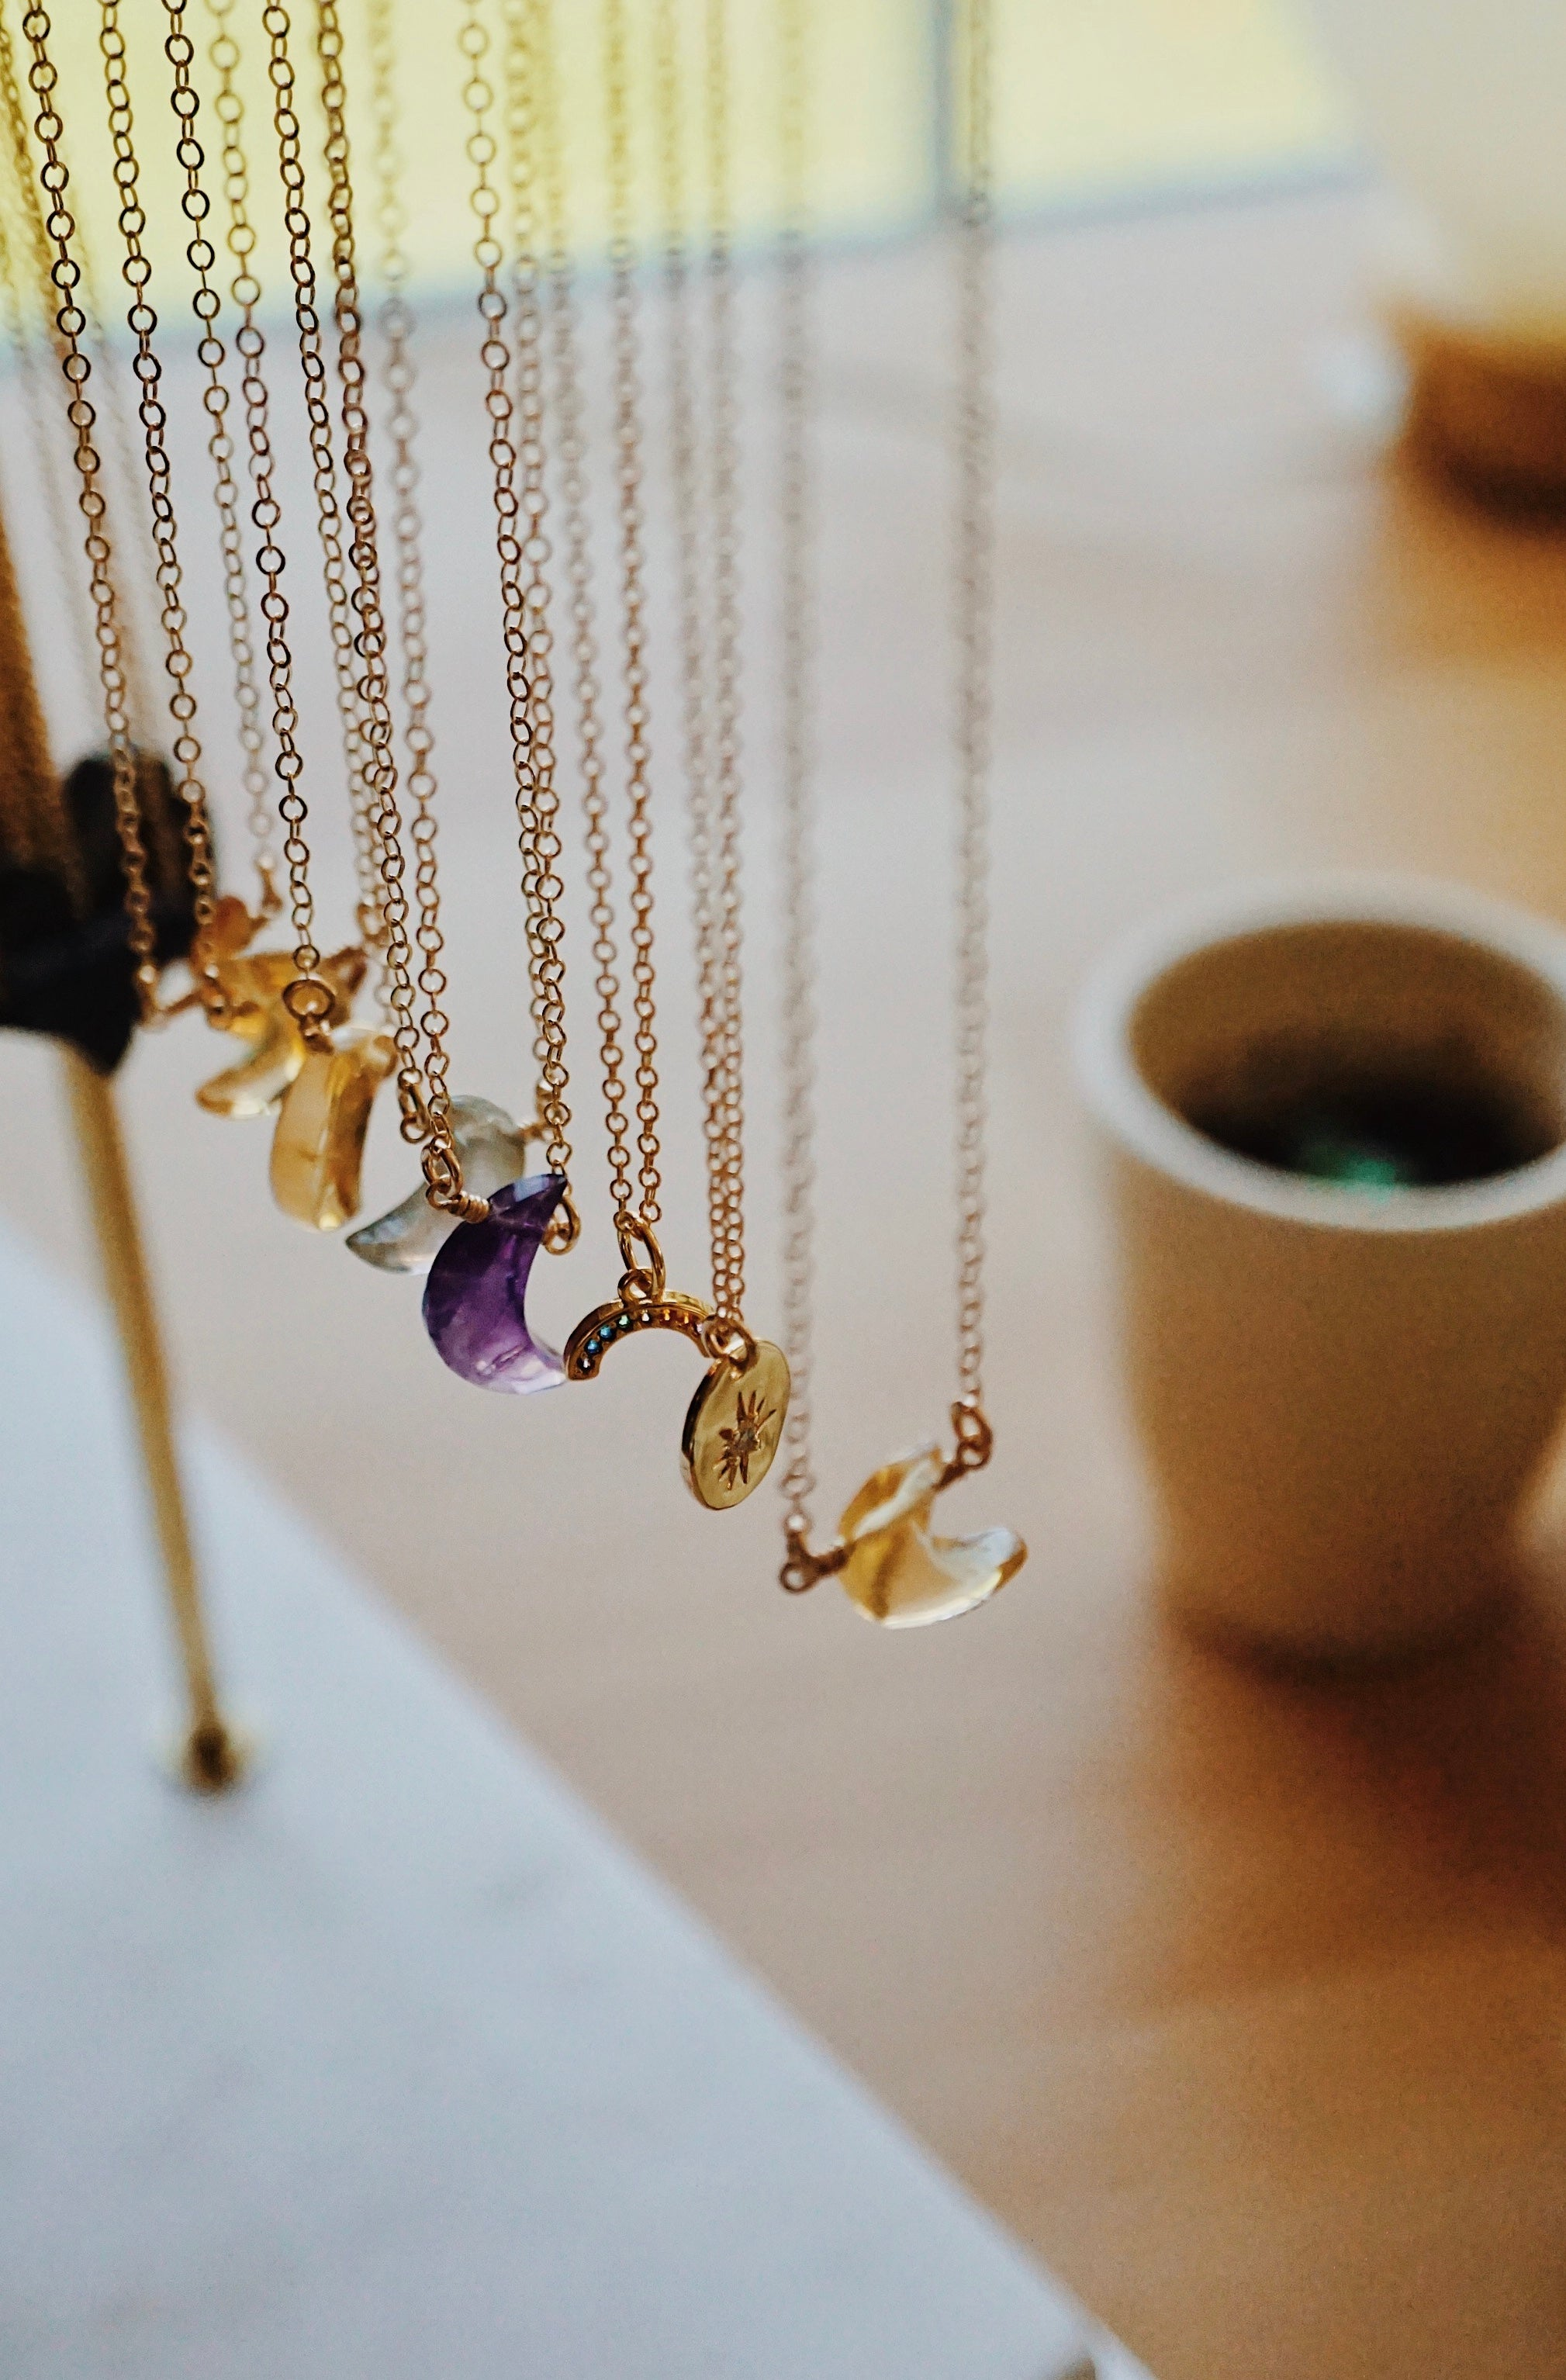 The LUNA ✶ Celestial Collection ✶ Petite Amethyst & Rainbow Moonstone Crescent Moon Necklace + Lava Charm